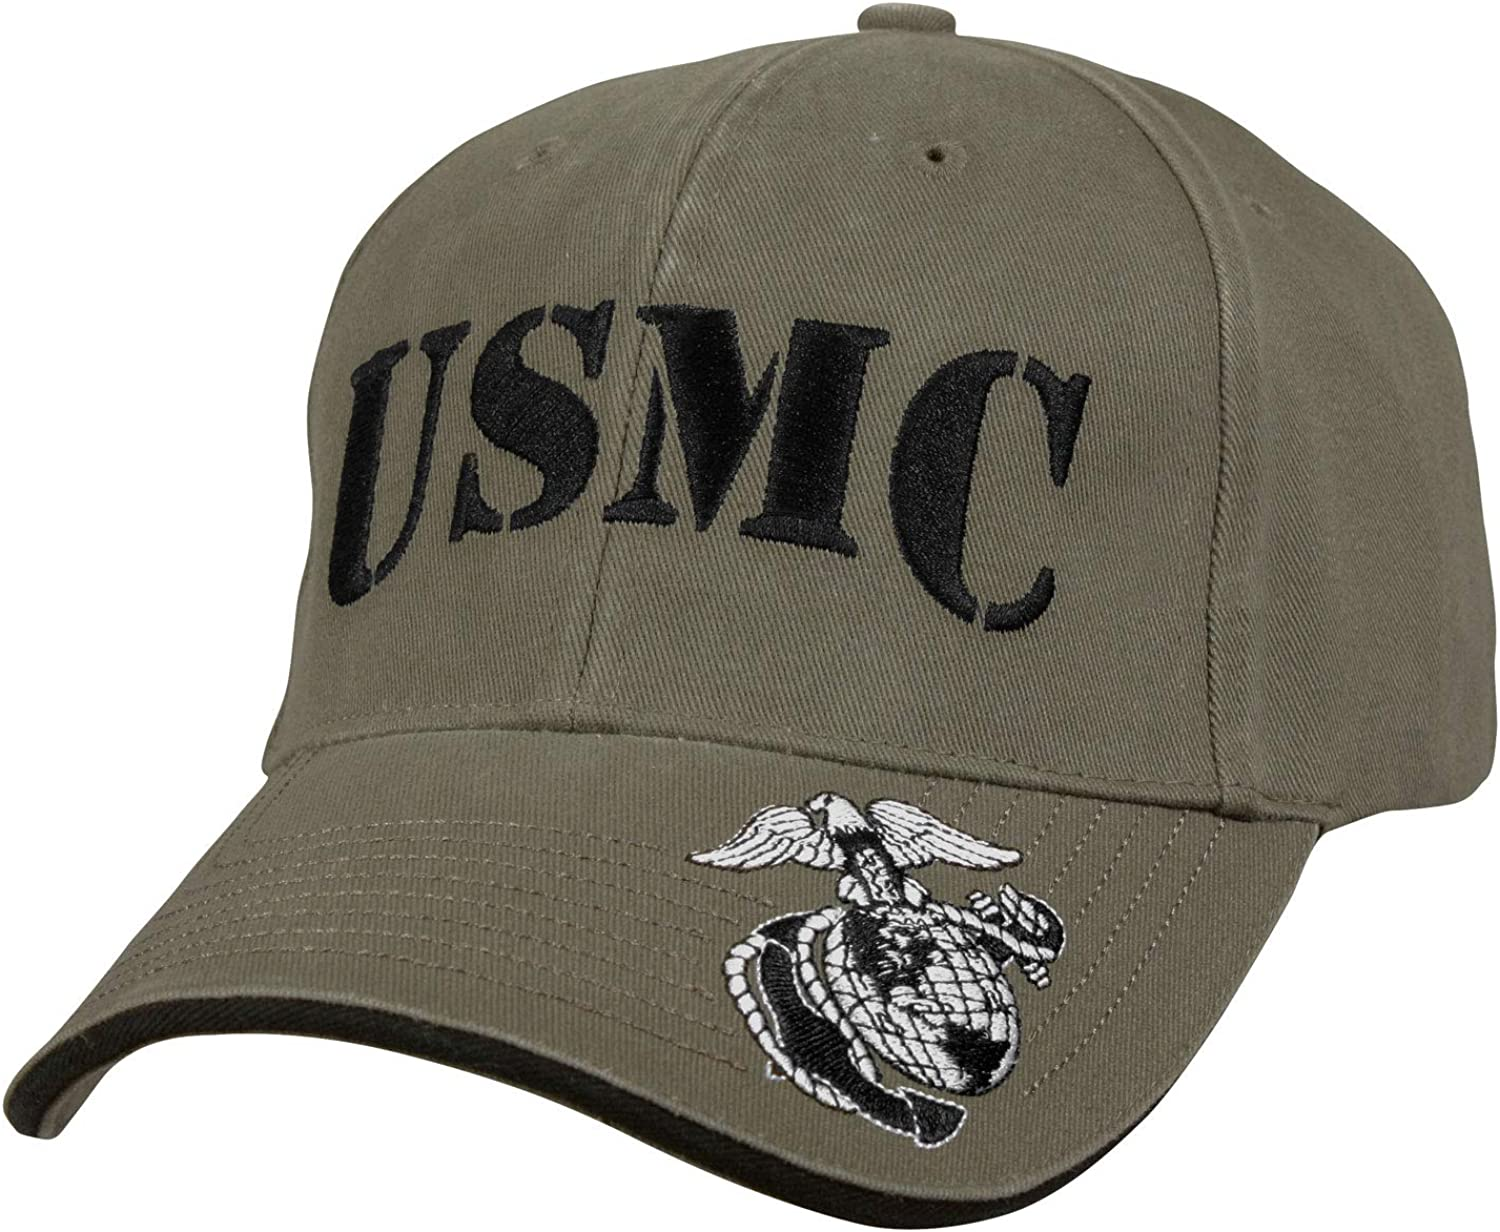 Rothco Deluxe Vintage USMC Embroidered Low Pro Cap: Clothing